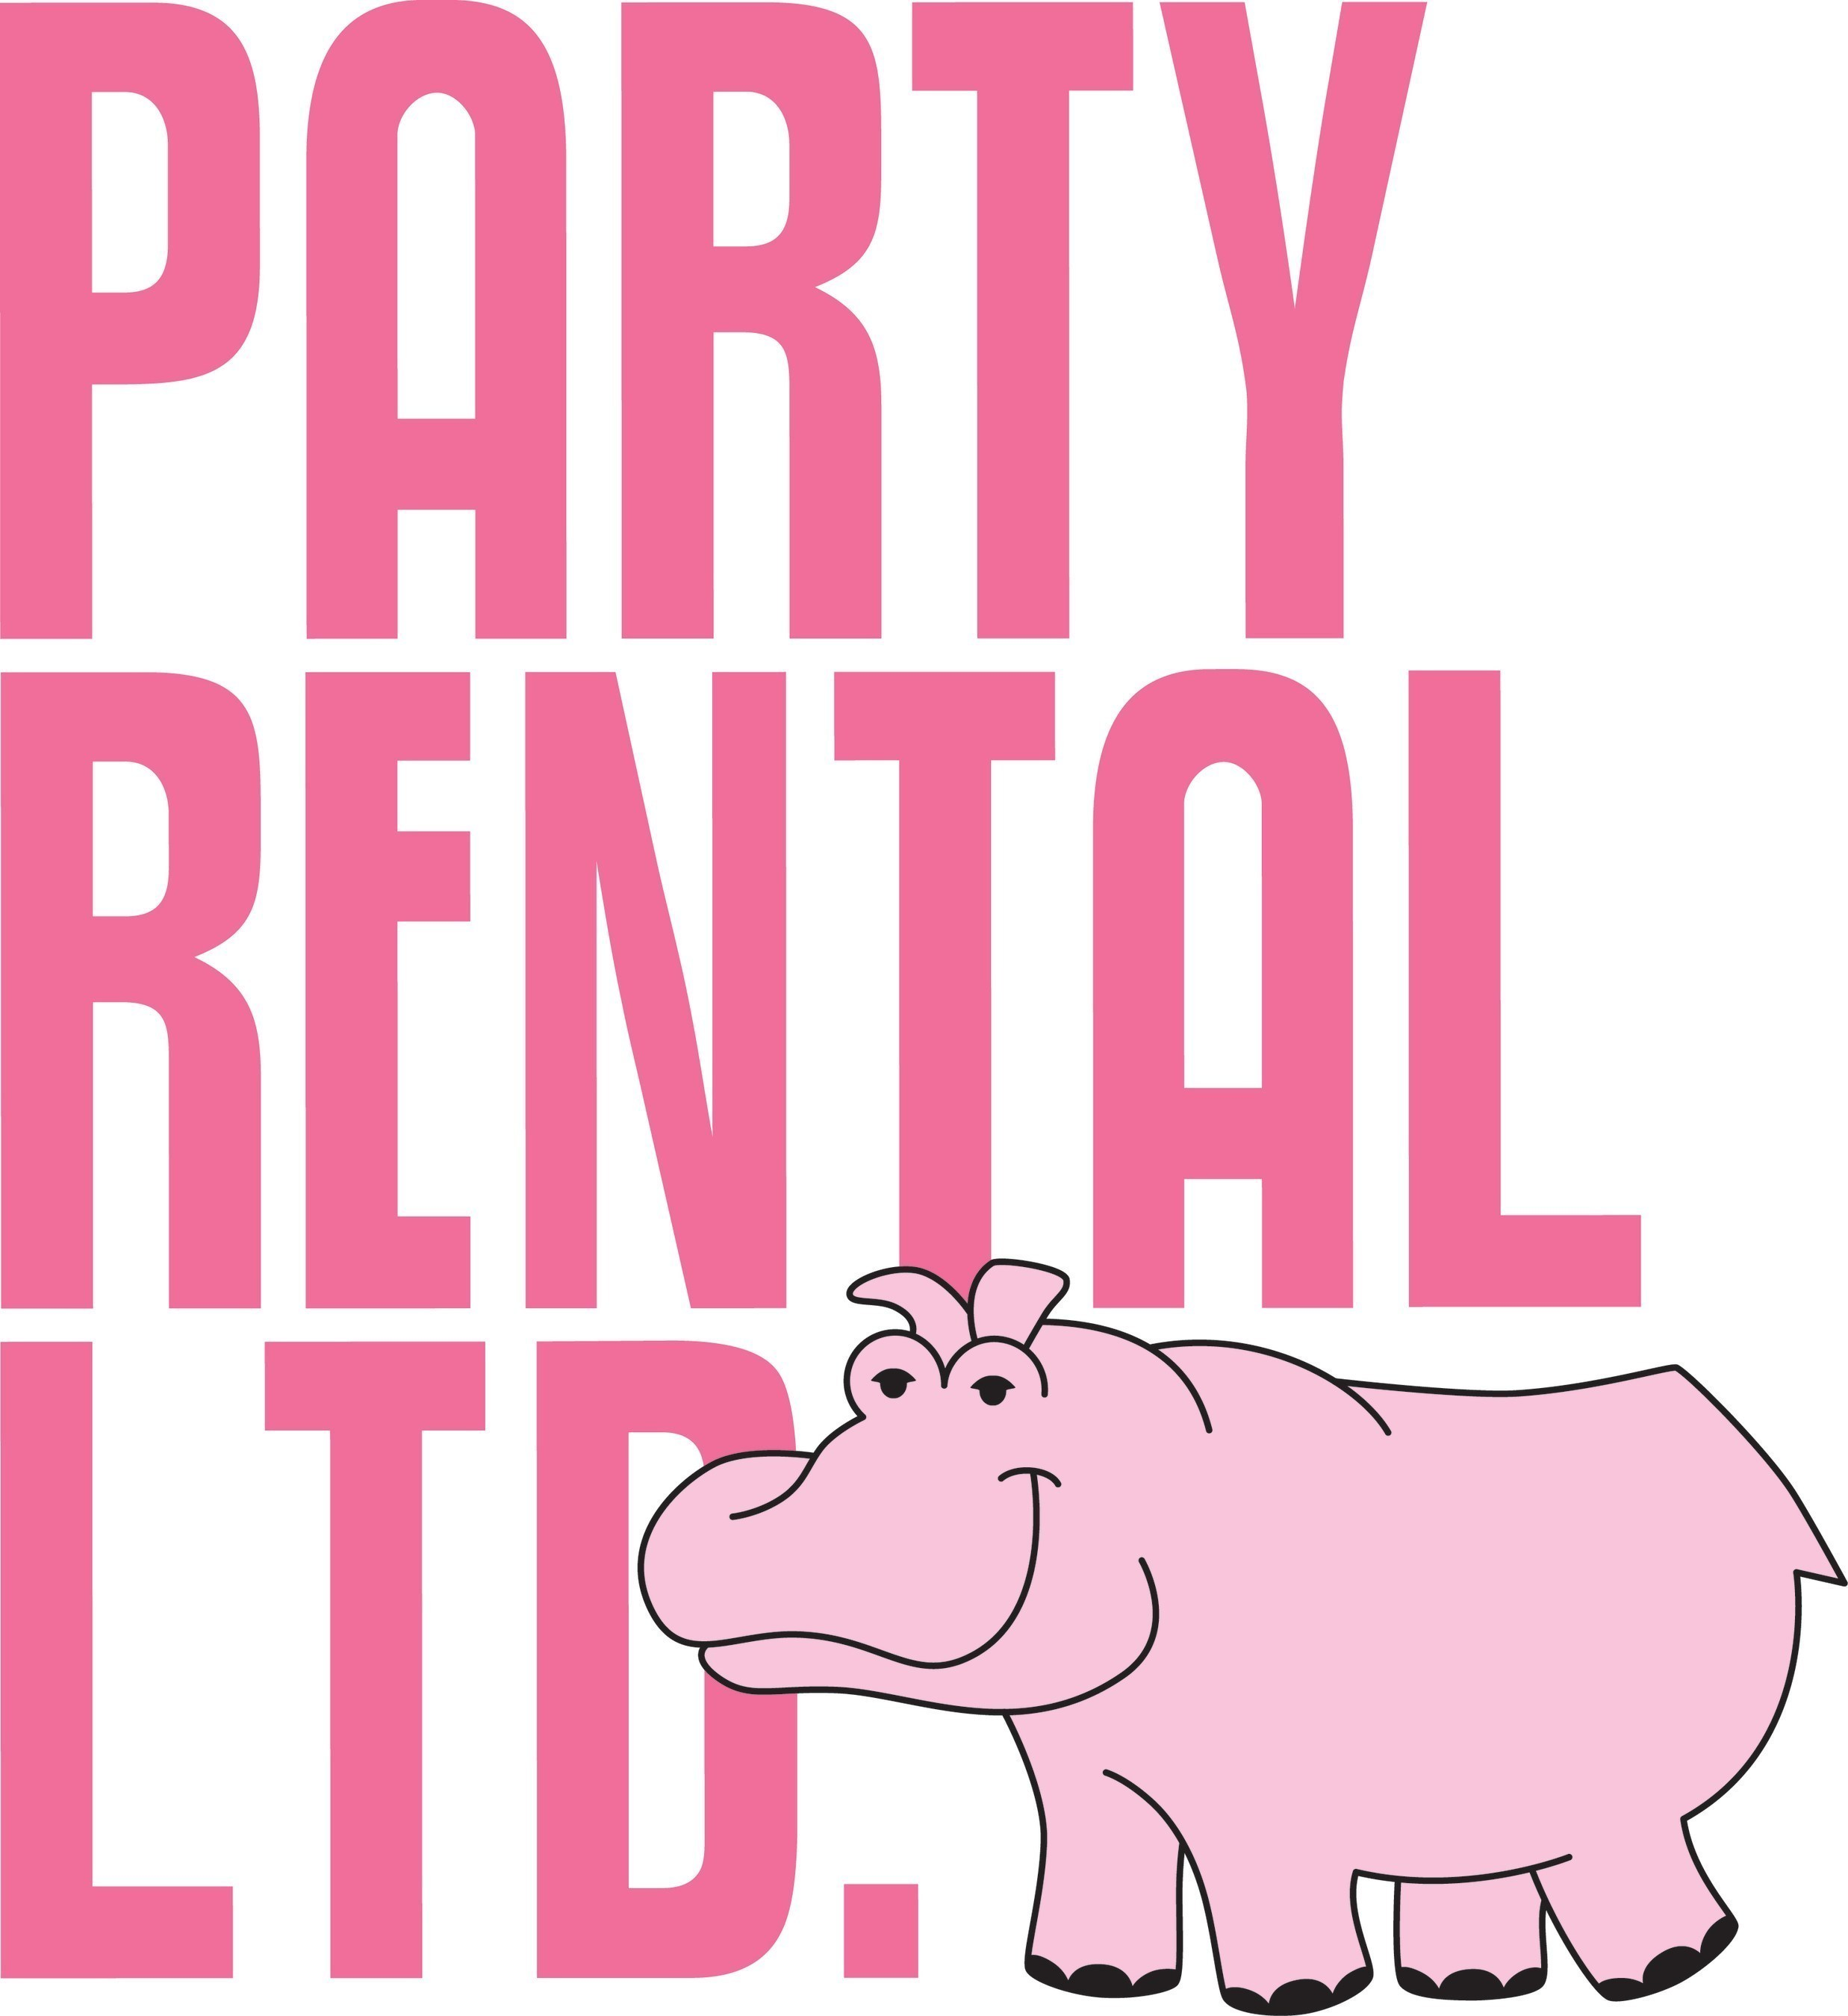 Party Rental LTD logo from web.jpg